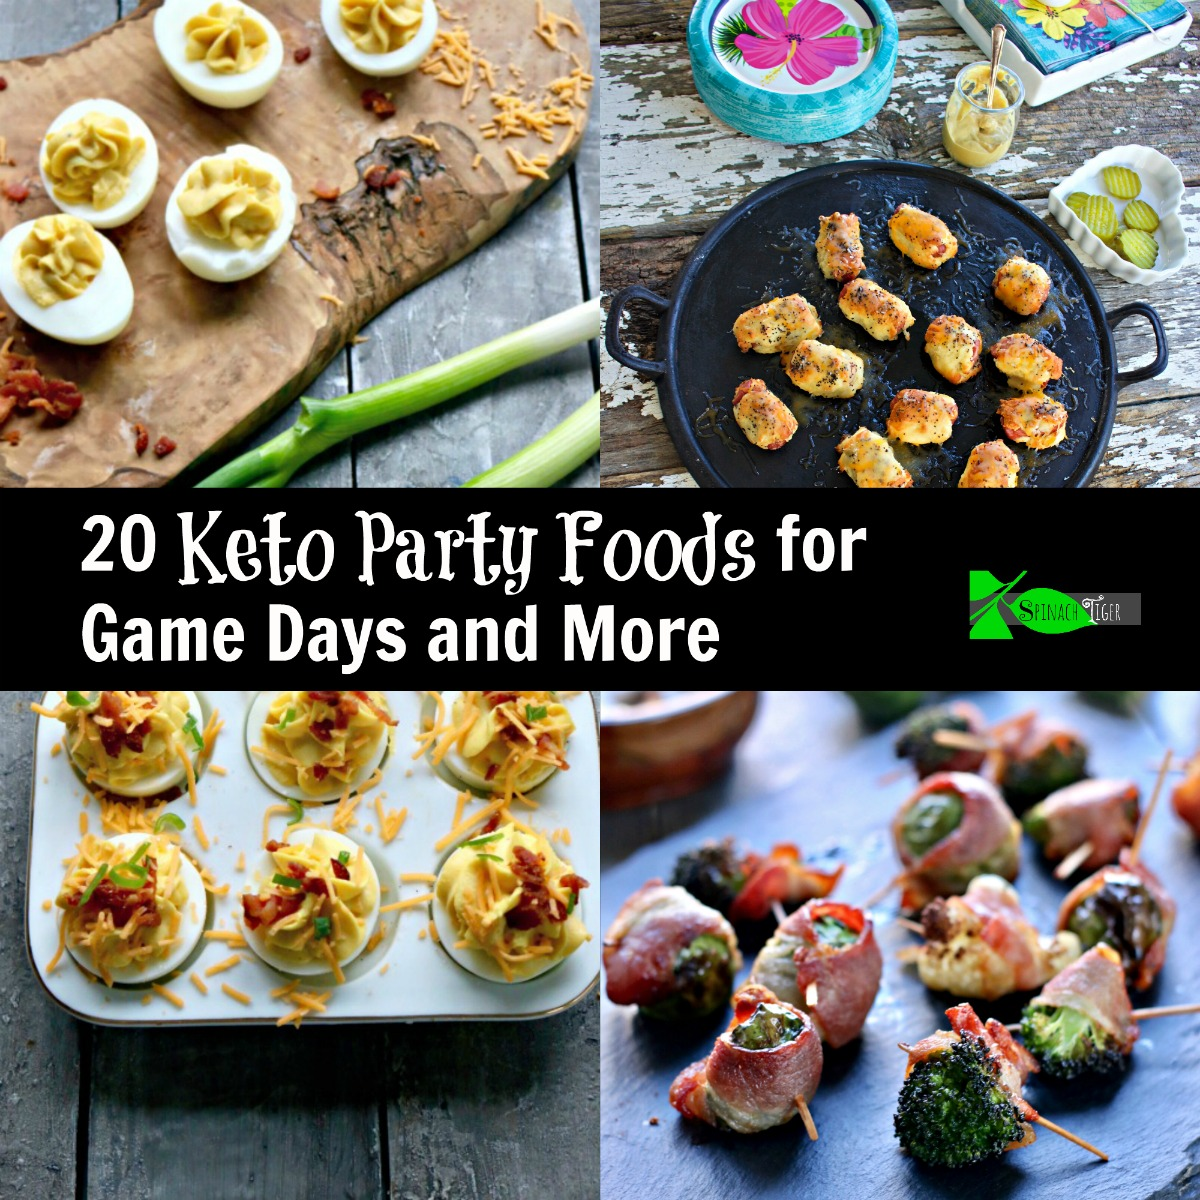 Keto Appetizers and Keto Party food